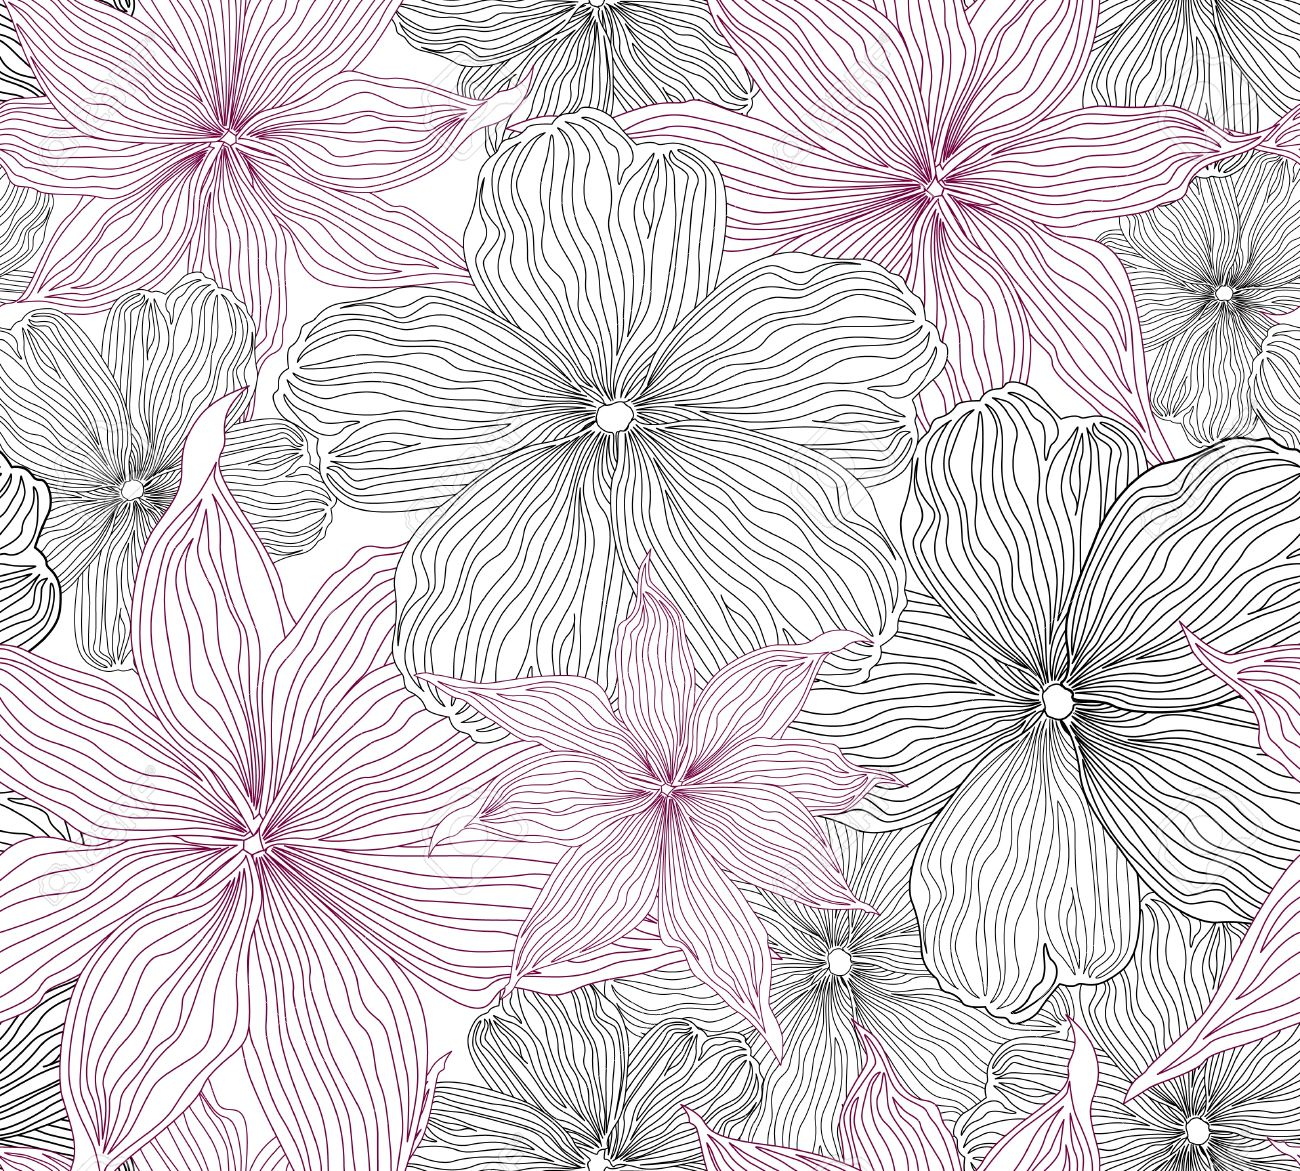 Black and white seamless background with white and pink flowers black and white seamless background with white and pink flowers graphic stock vector 18524412 dhlflorist Choice Image